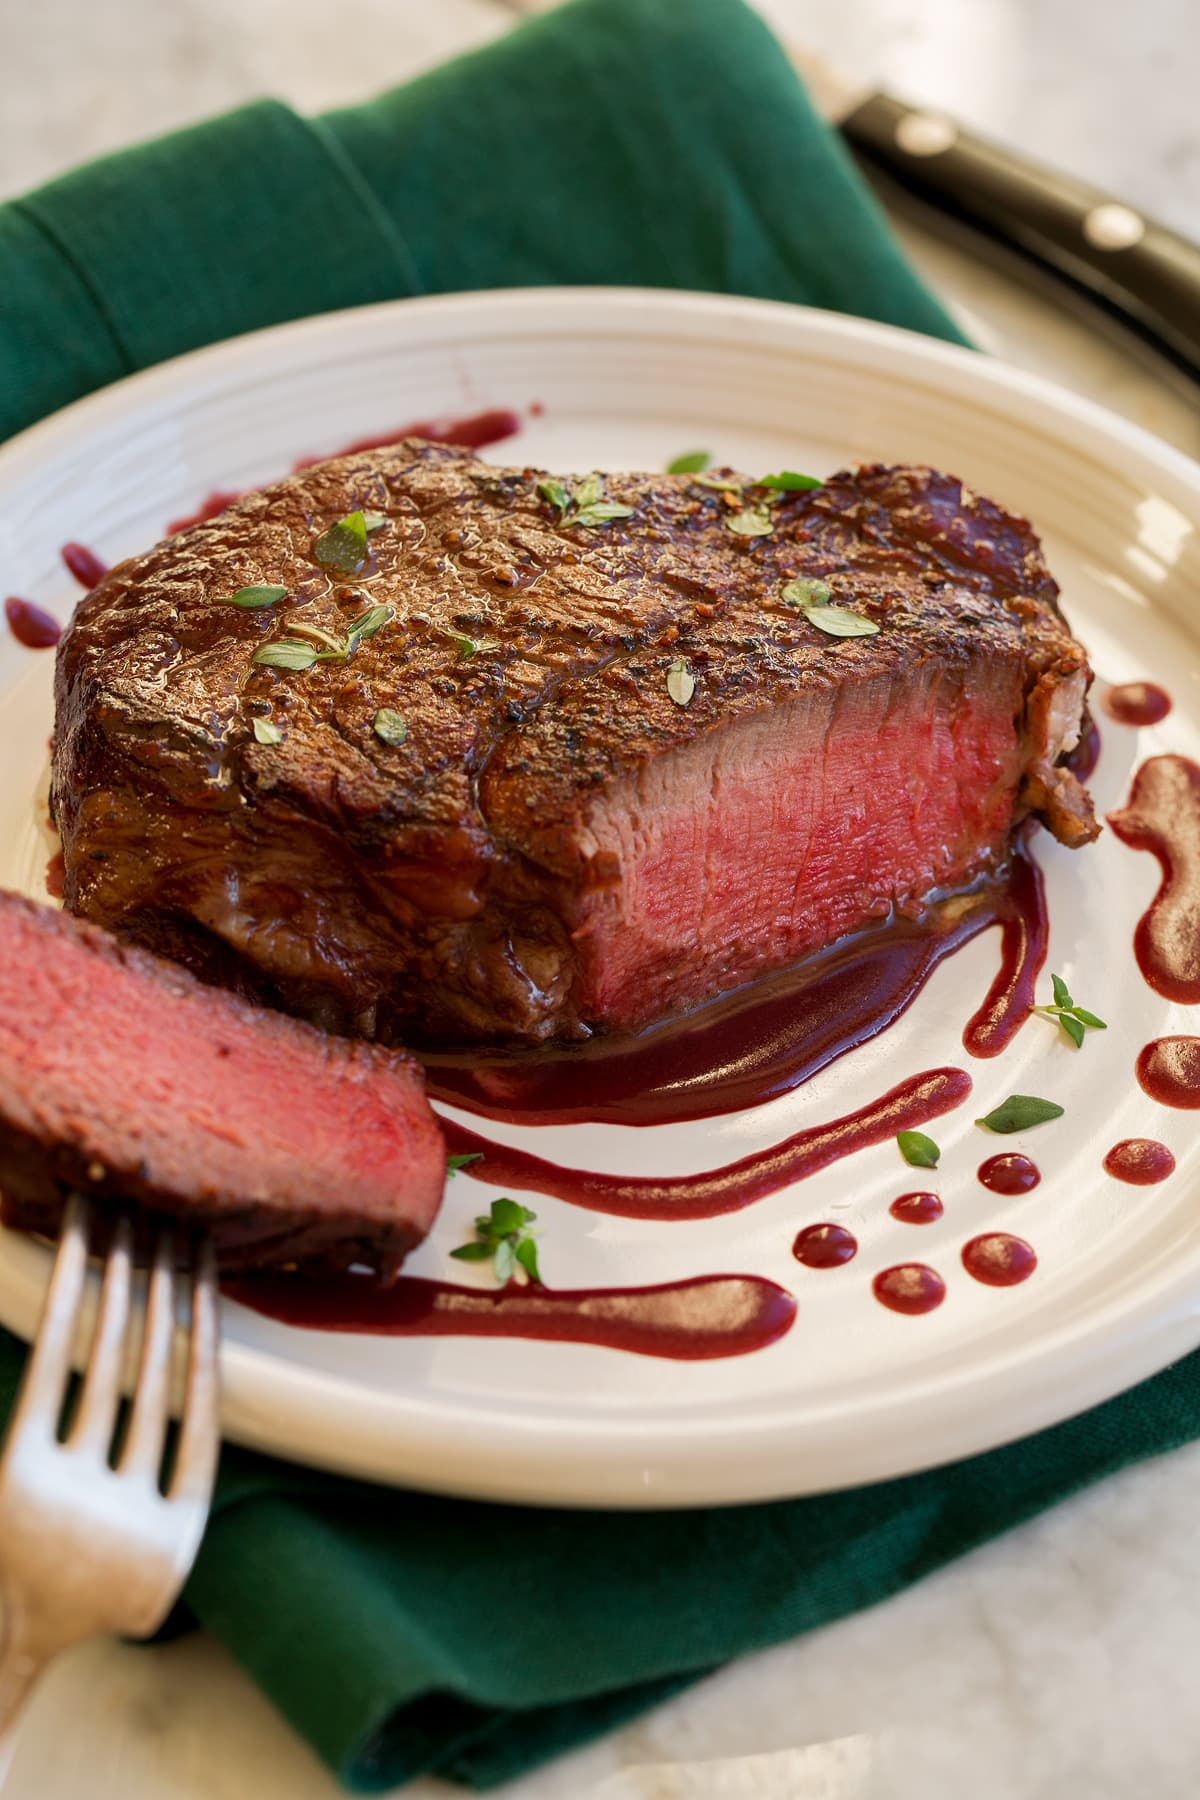 Filet Mignon on a serving plate with red wine sauce.